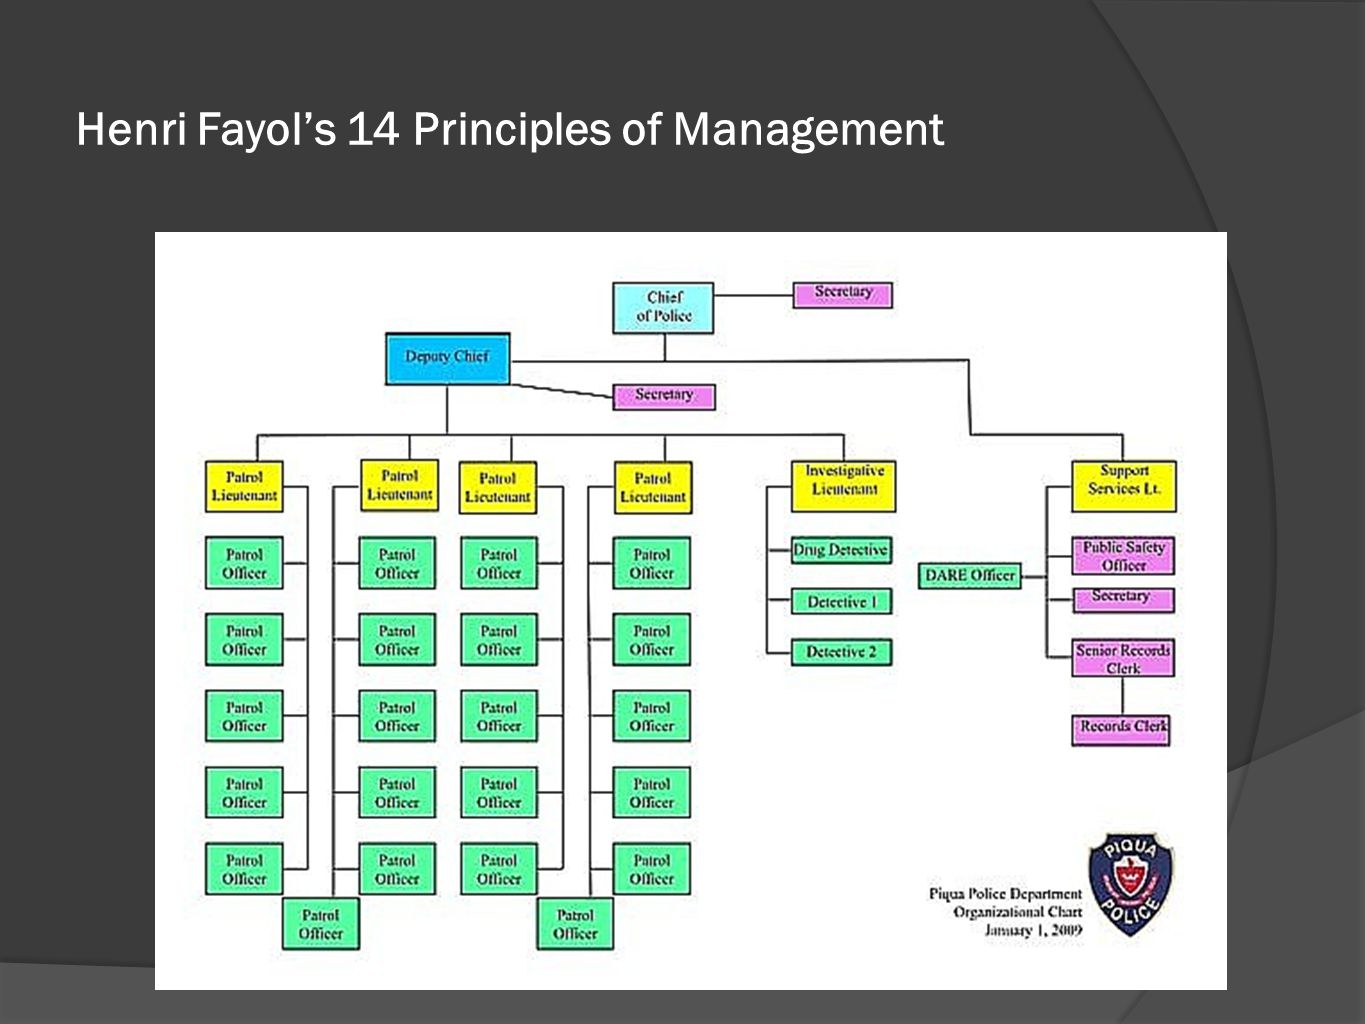 Henri Fayol's 14 Principles of Management